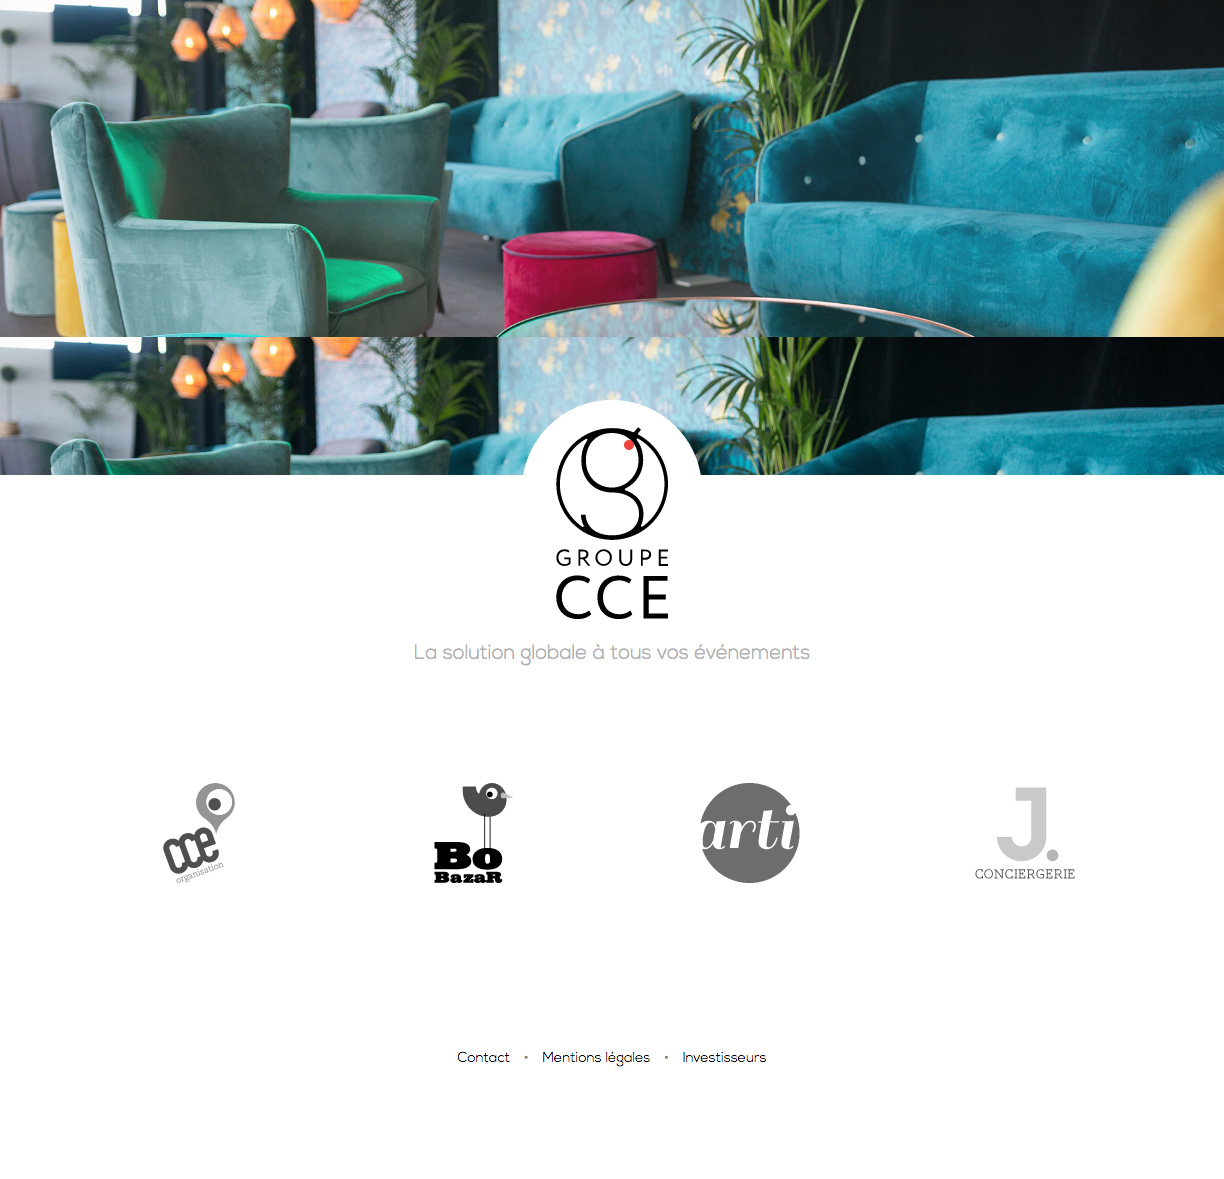 Groupe CCE